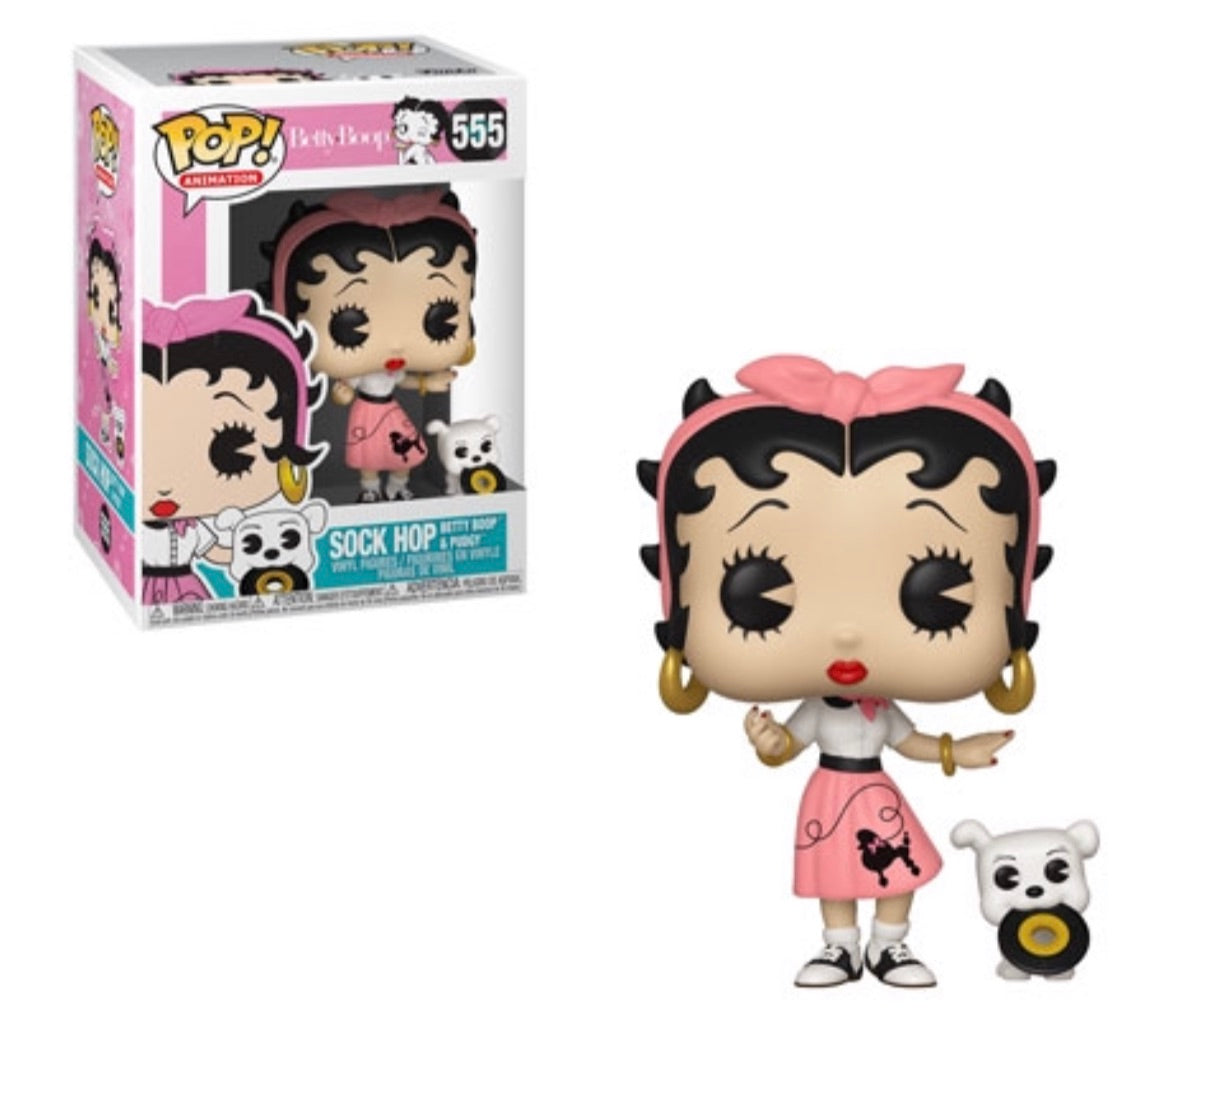 Pop! Animation: Sock Hop Betty Boop & Pudgy(Preorder)